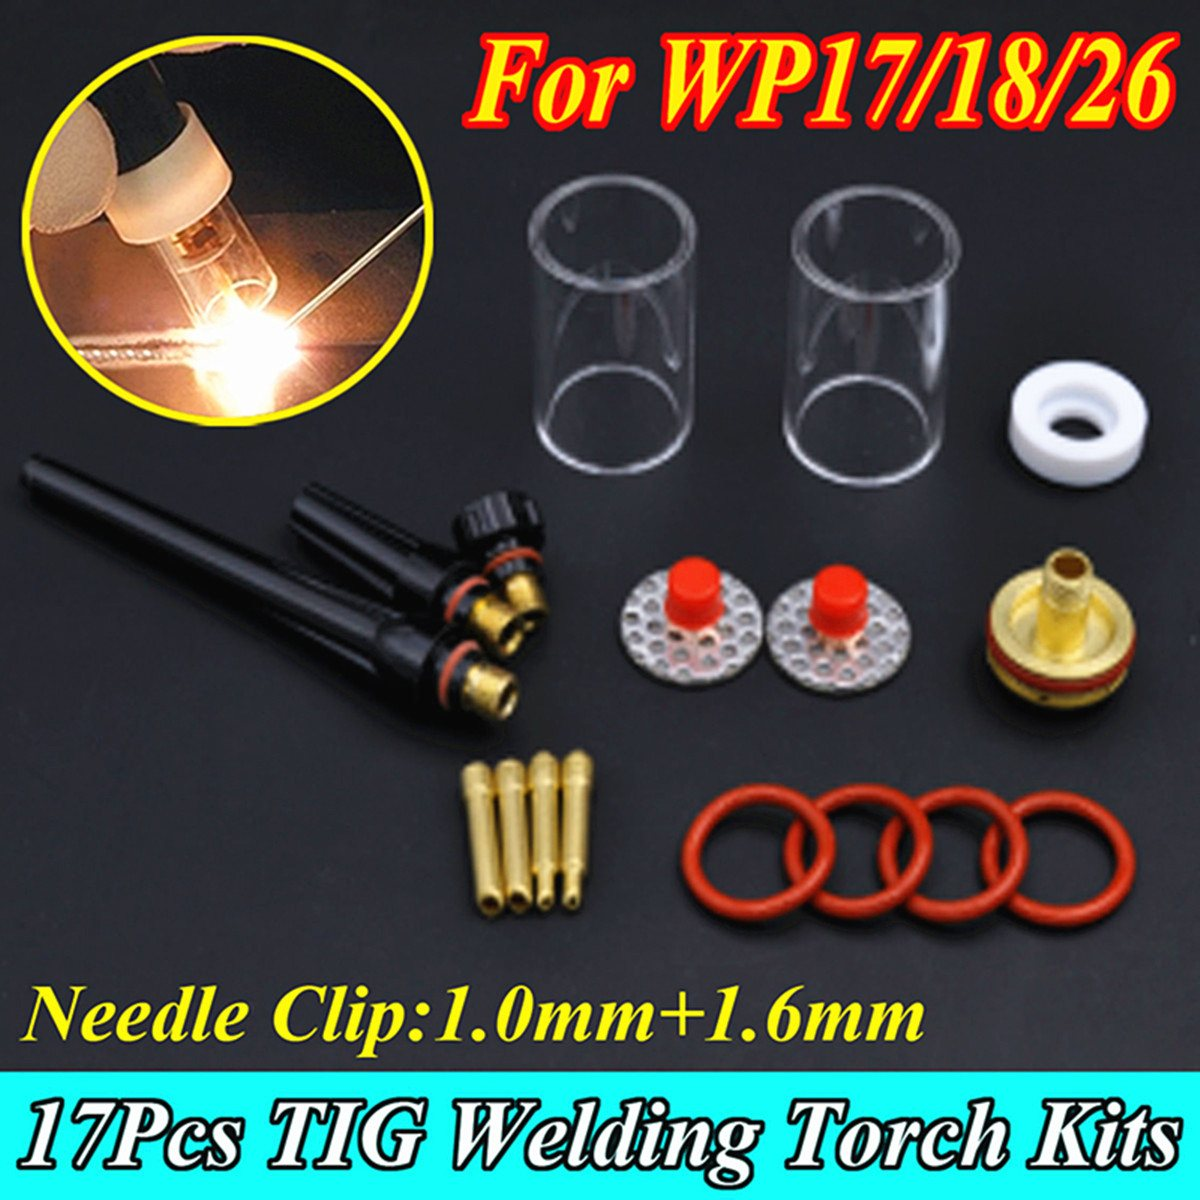 New 17Pcs TIG Welding Torch Stubby Collet Gas Lens Glass Nozzle Pryex Cup Kit with Heat-Resistant O-rings For WP-17/18/26 Series wp 17f sr 17f tig welding torch complete 13feet 4meter soldering iron flexible